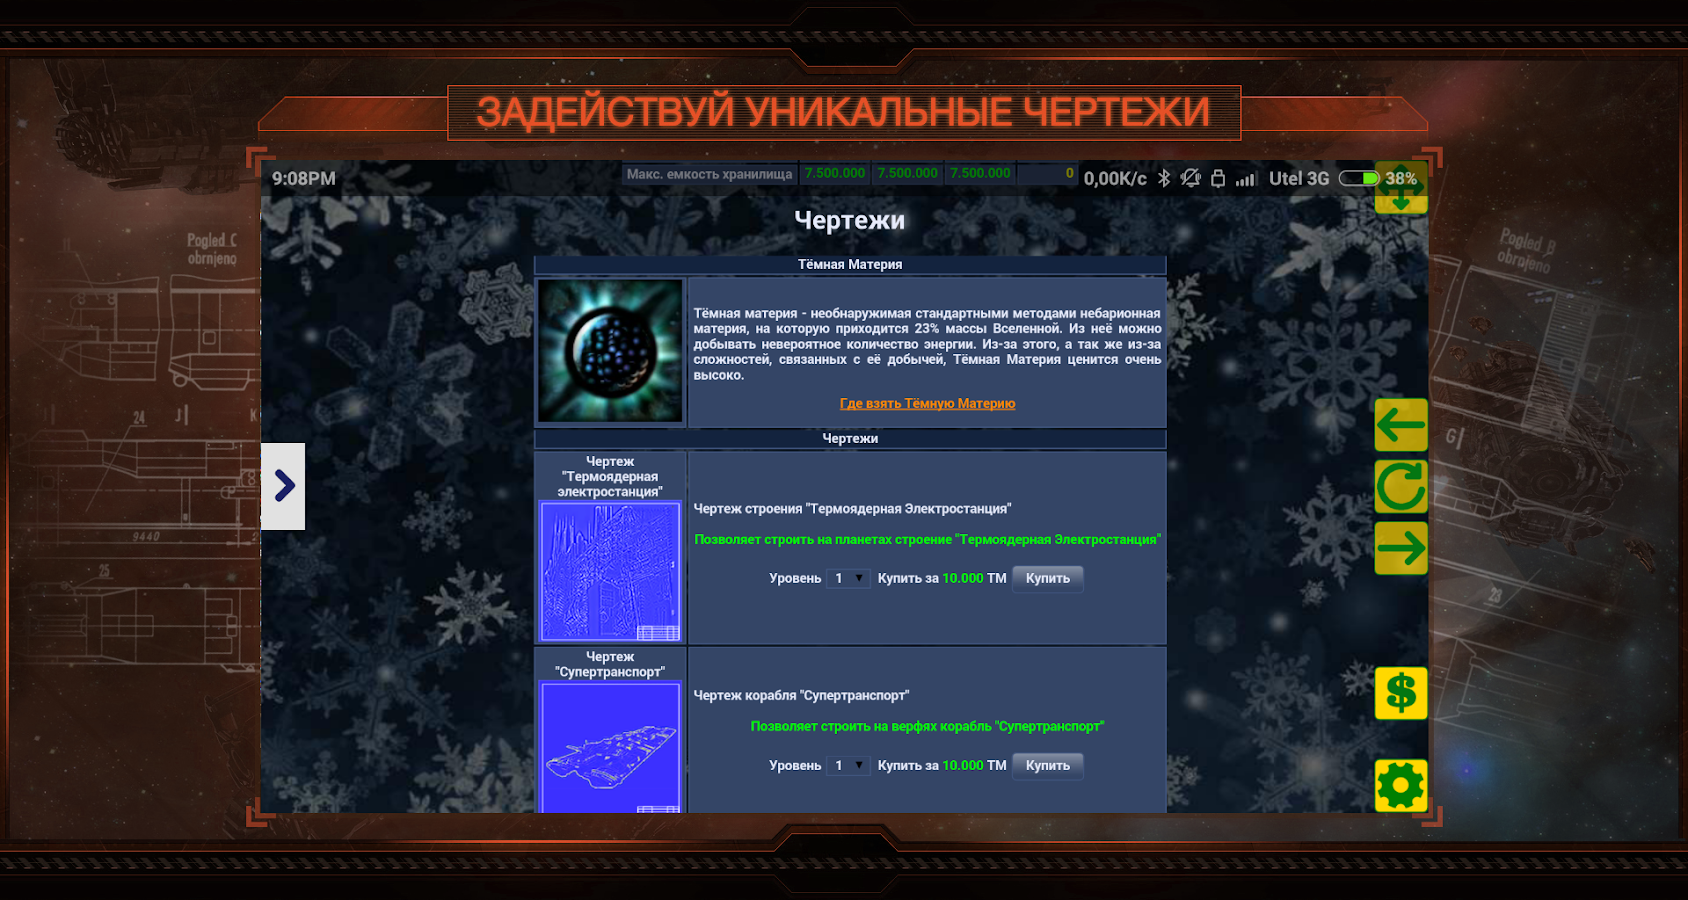 Supernova HD game client- screenshot